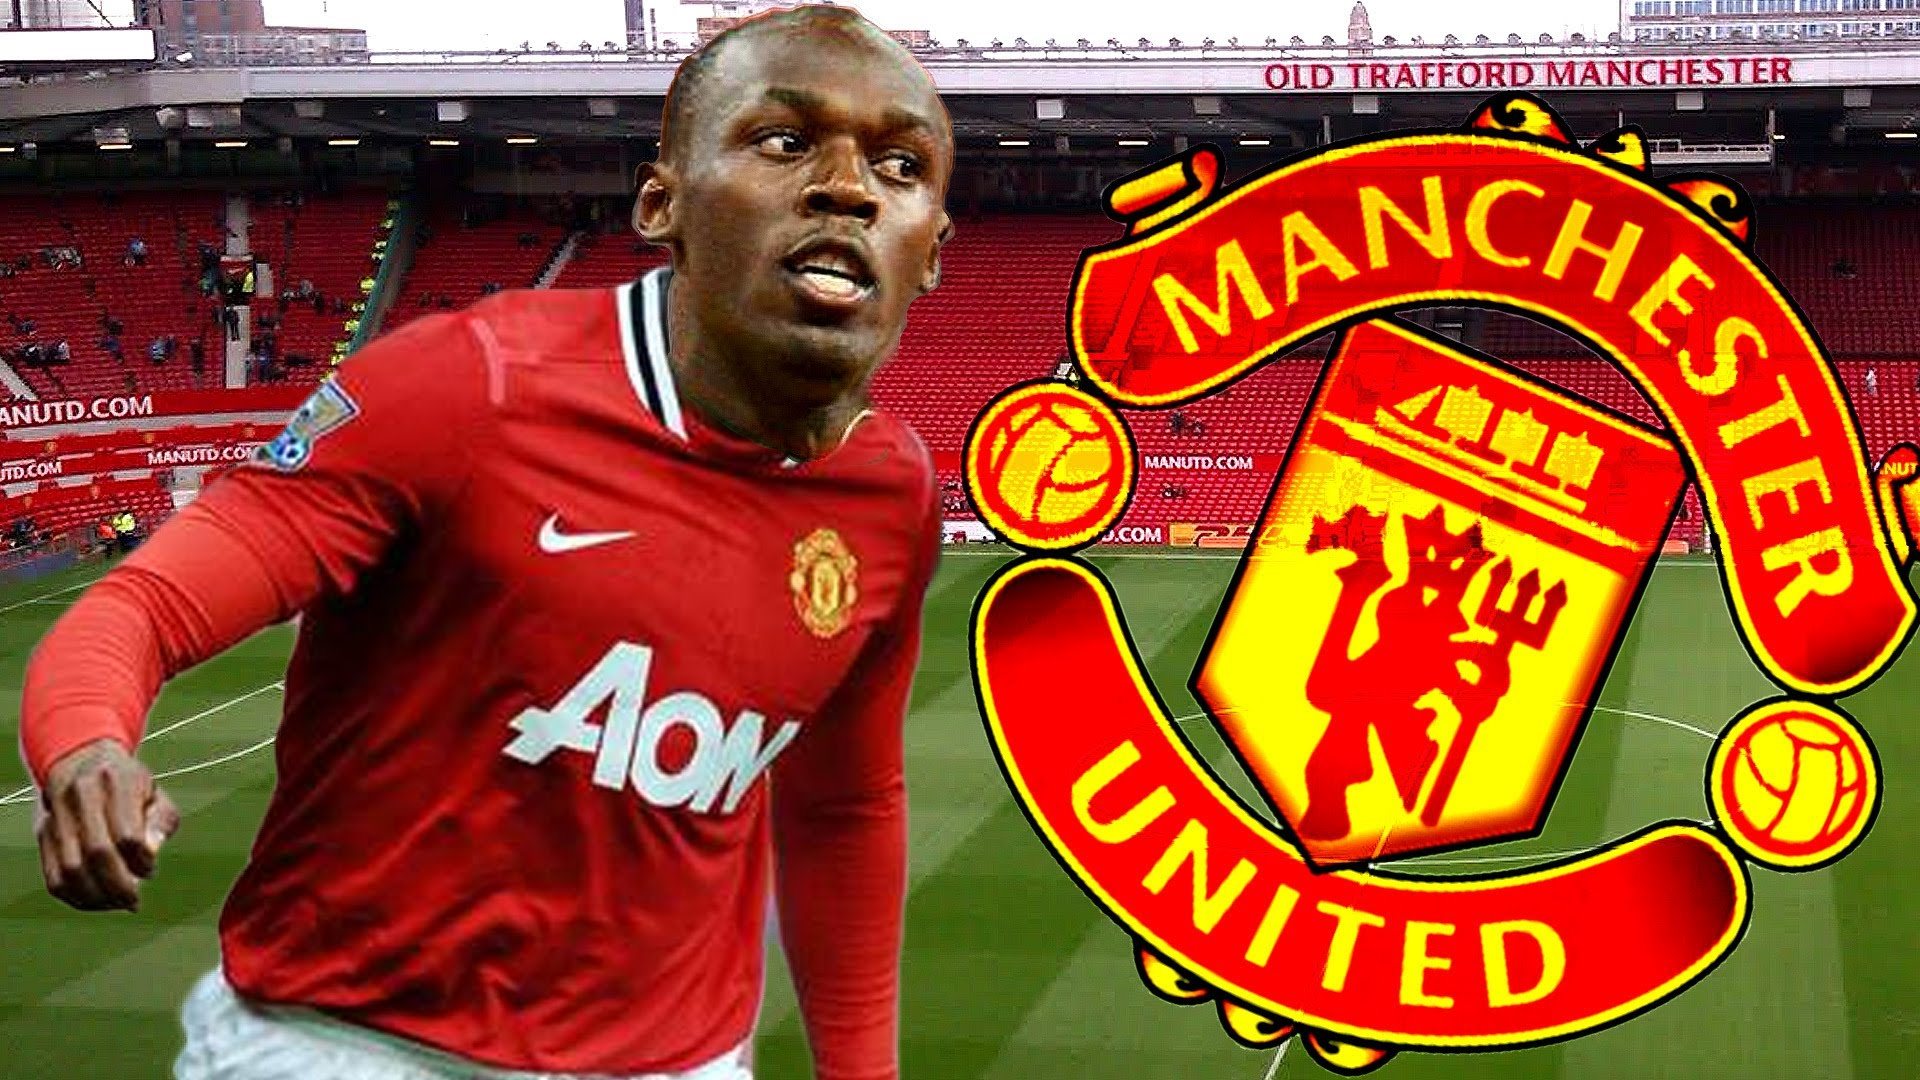 Manchester United contract: Usain Bolt starts football trials with Dortmund